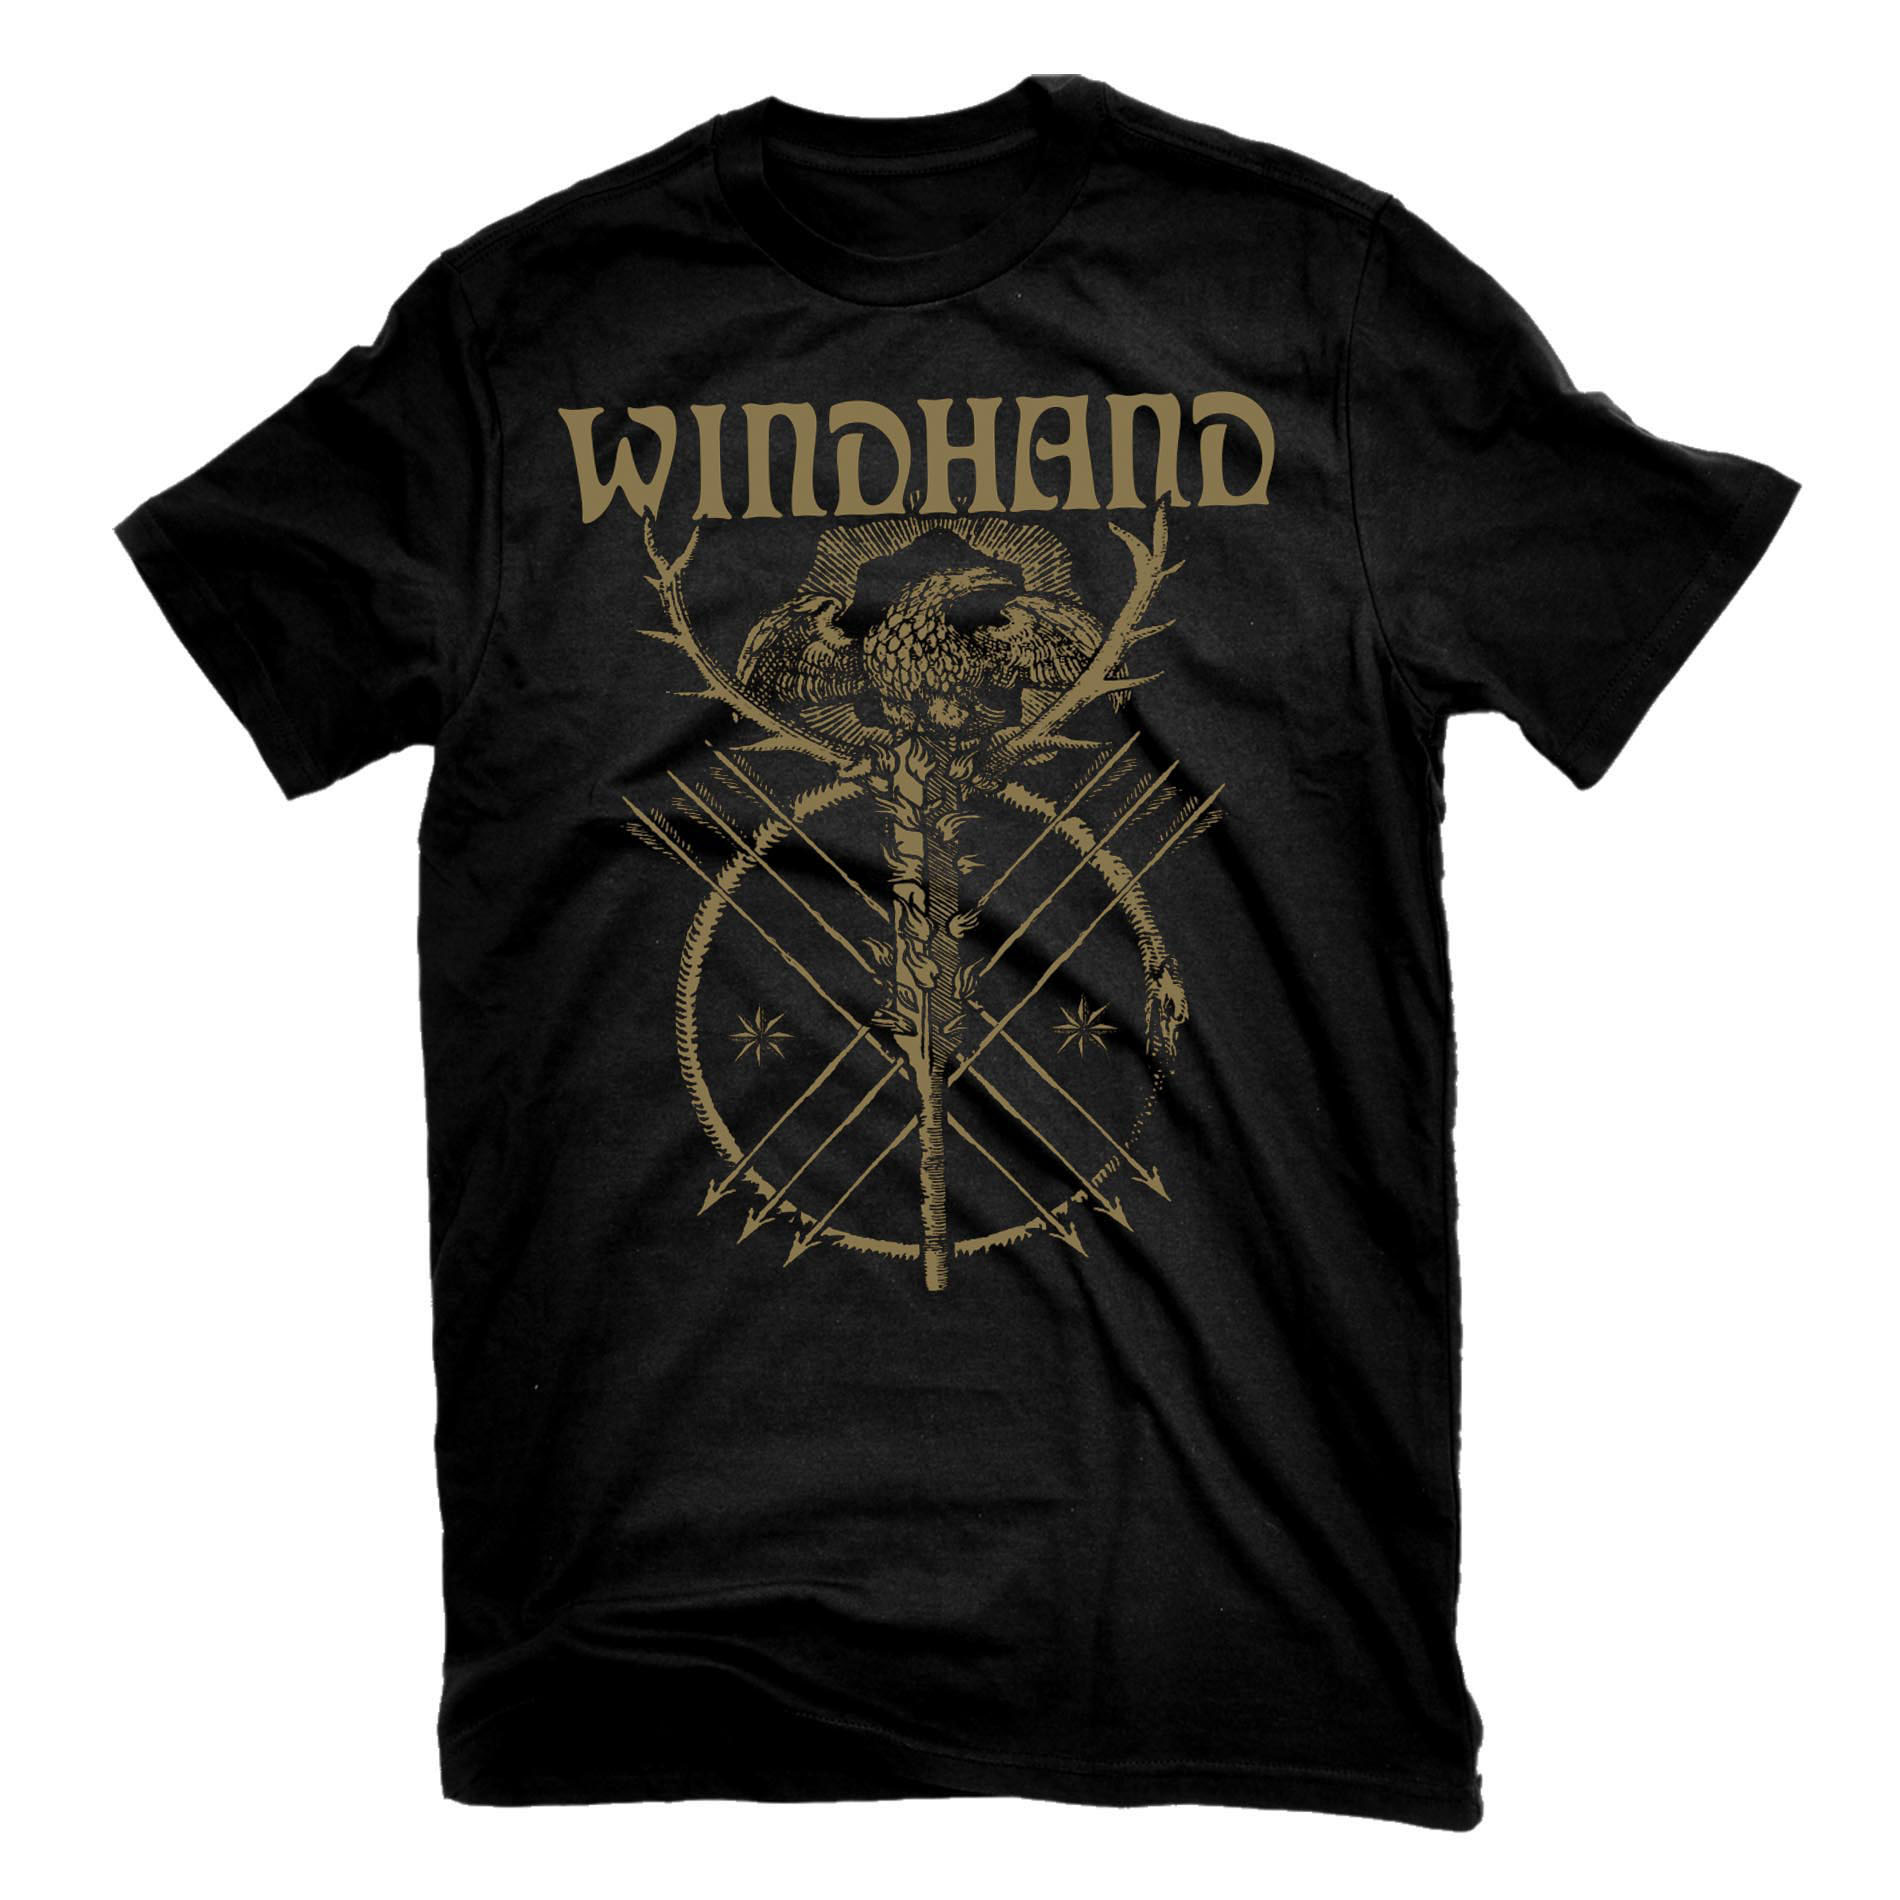 Windhand - Occult T Shirt + Split CD